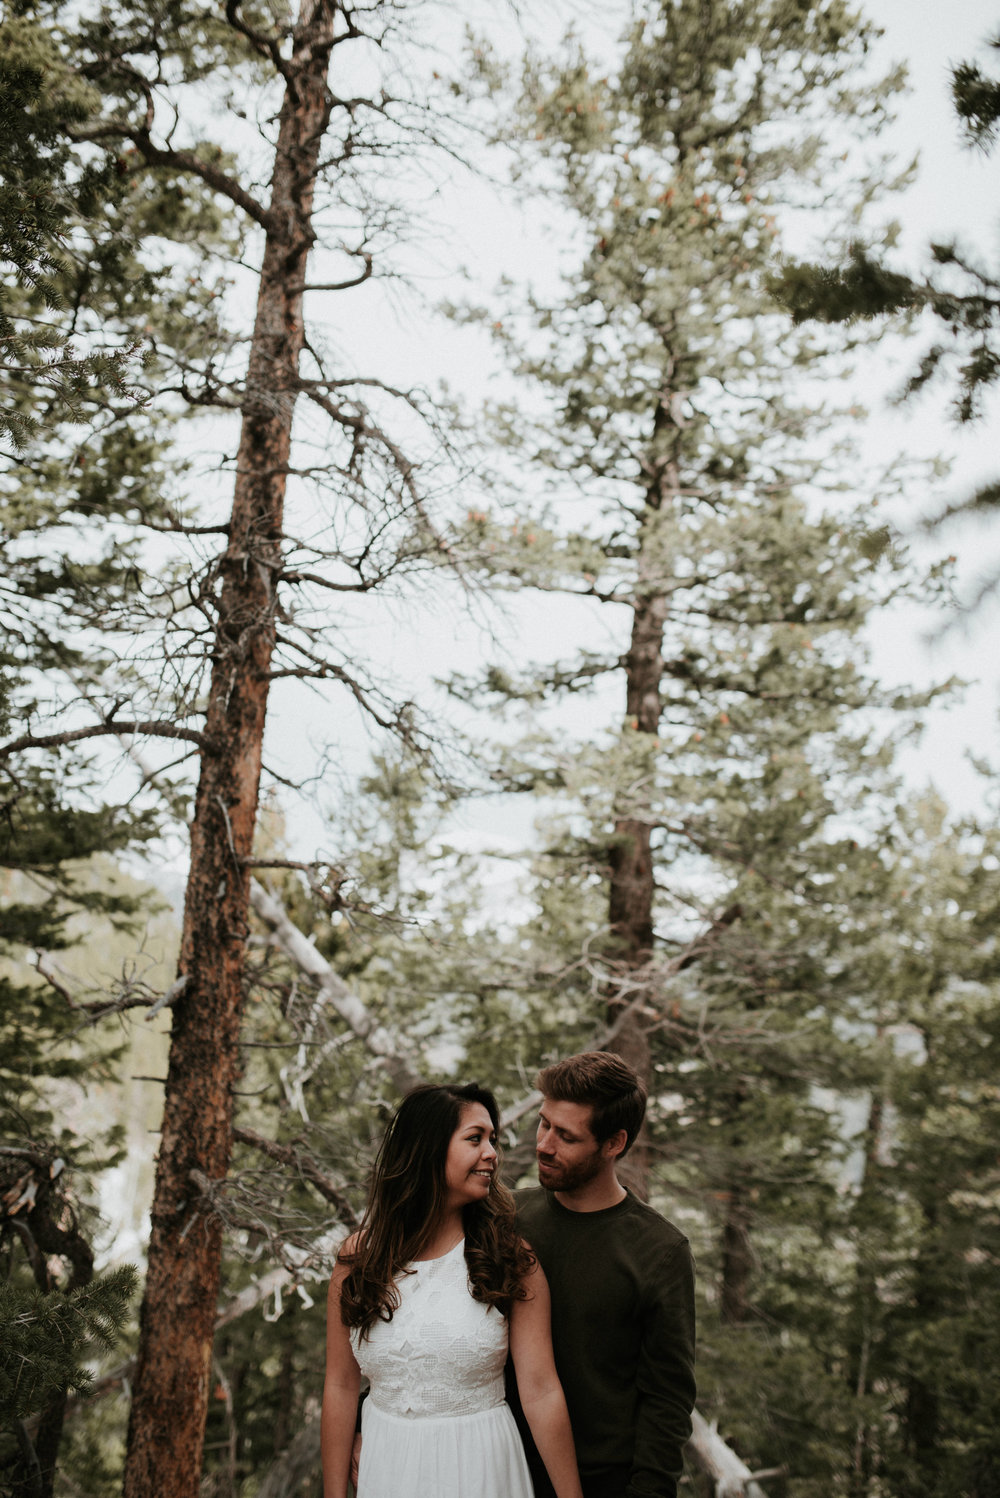 Zach&Rosalie Rocky Mountain National Park Engagement Denver Colorado Rocky Mountain Wedding Photographer00023.jpg